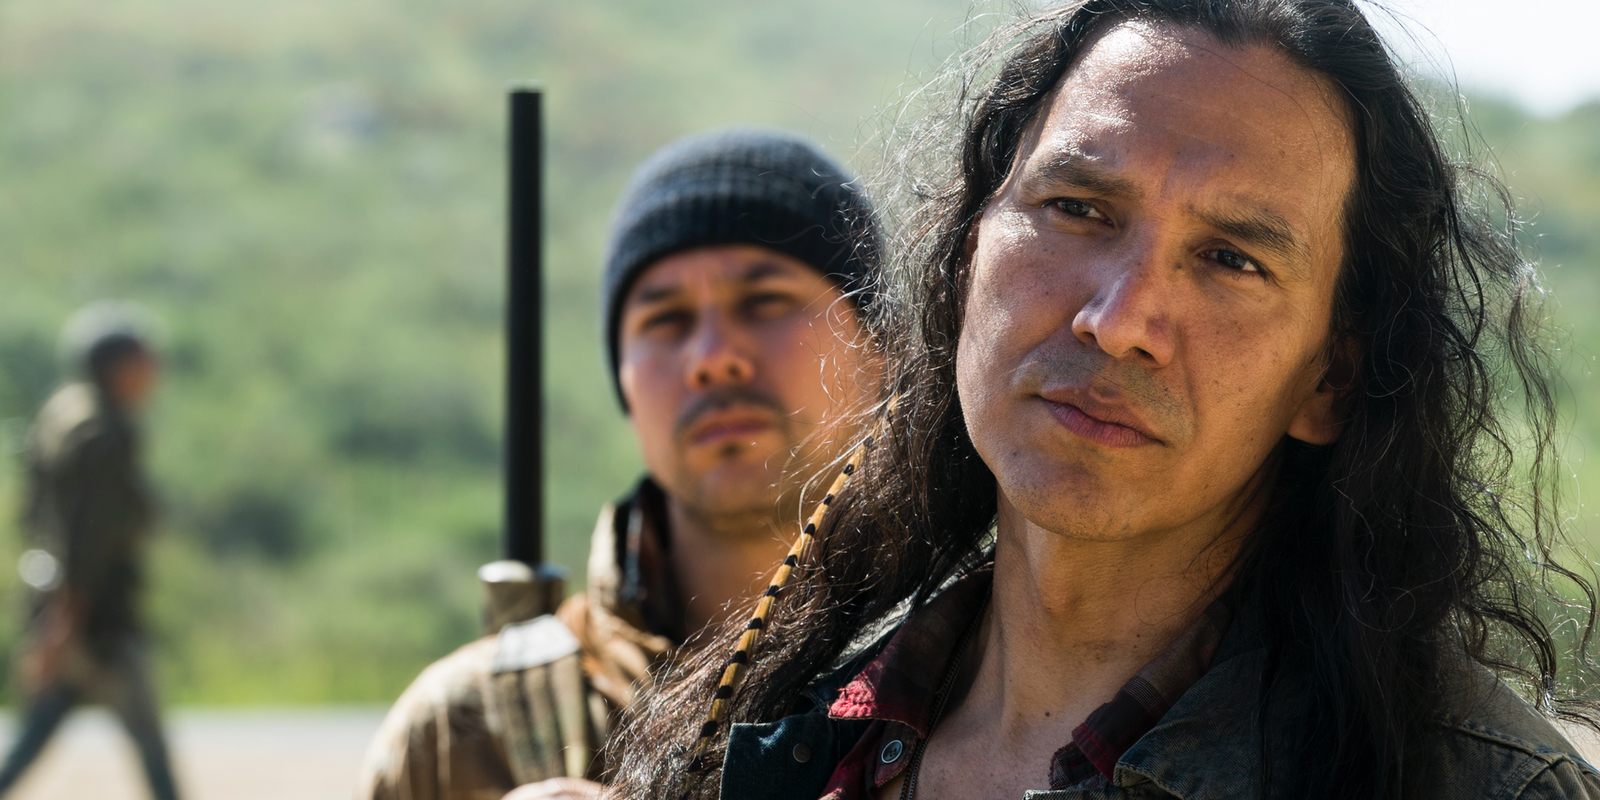 Michael Greyeyes as Qaletaqa Walker in Fear the Walking Dead